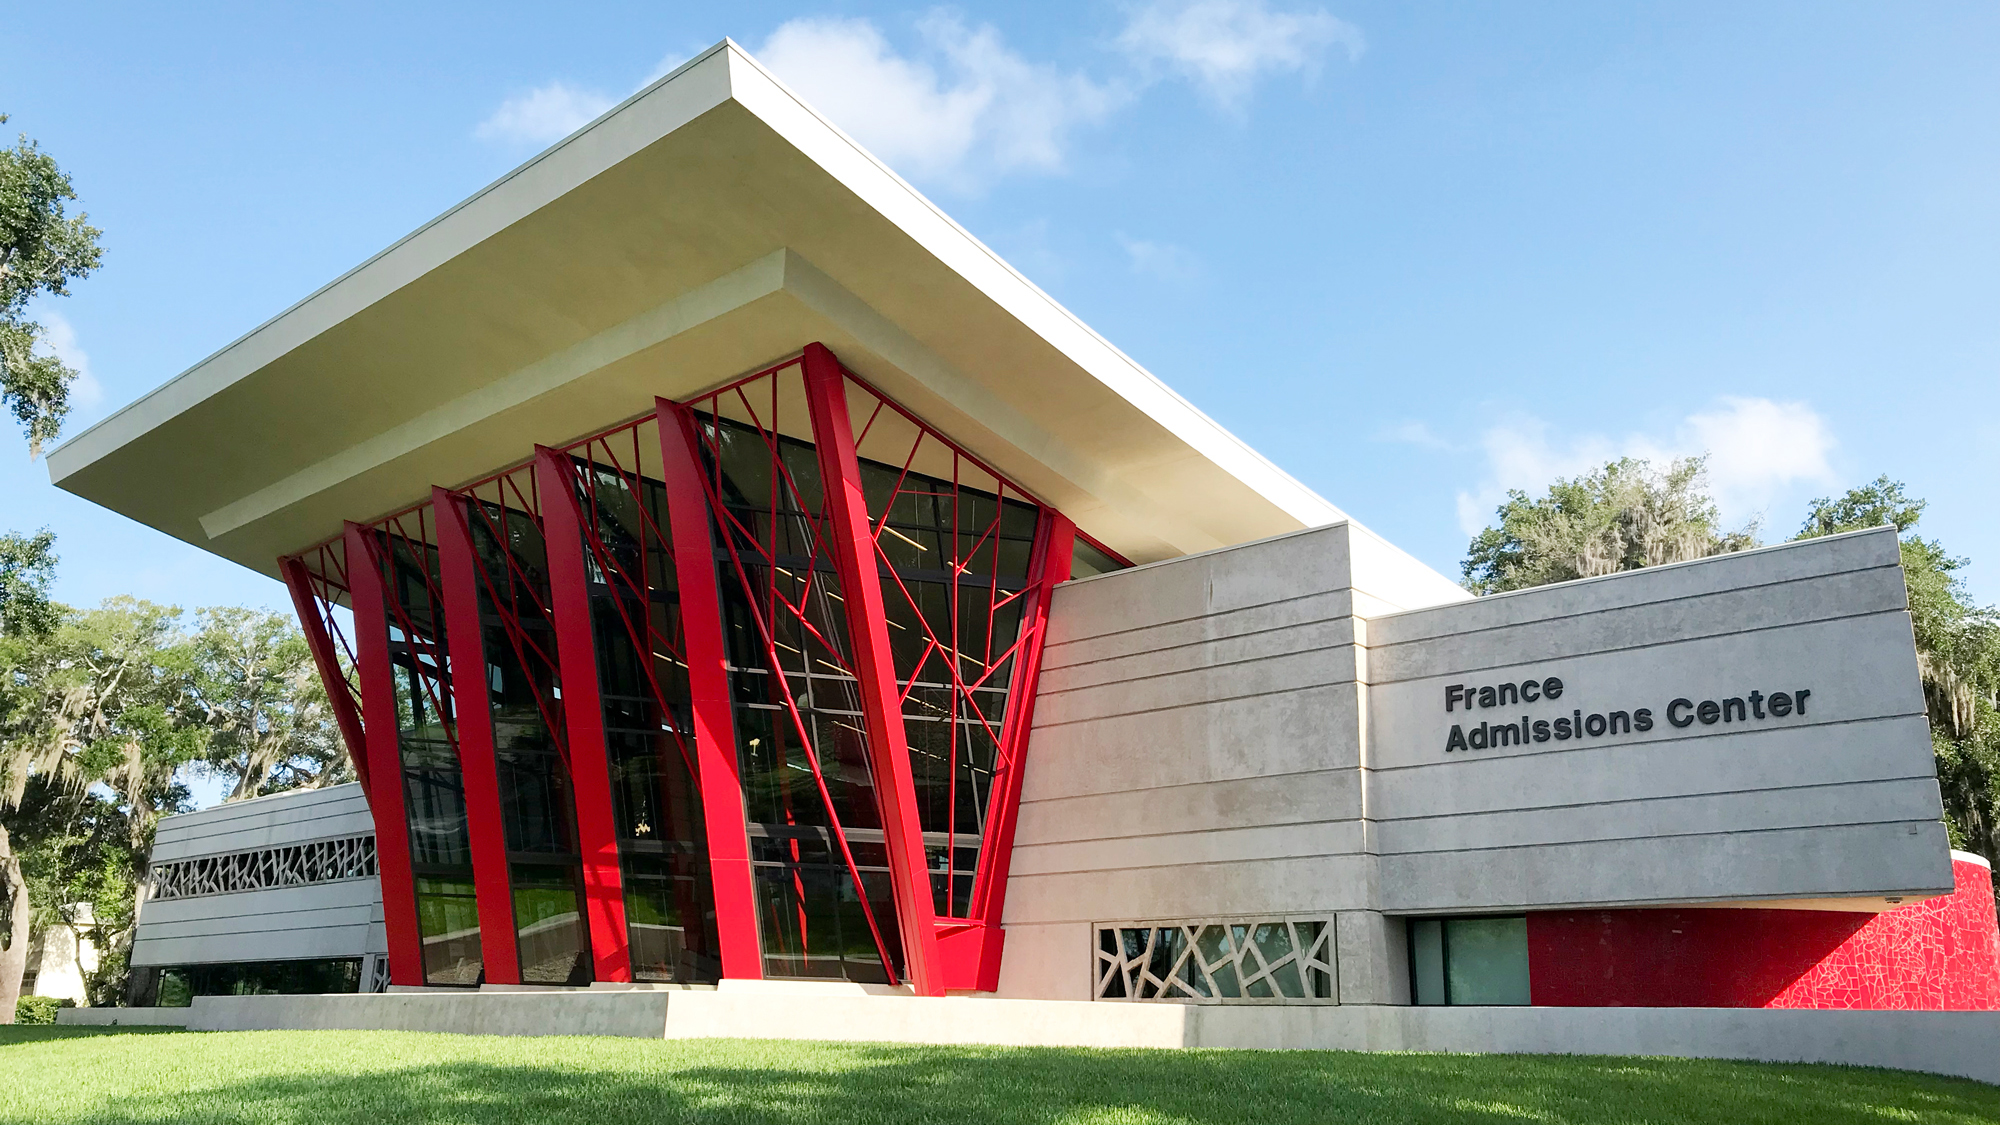 Florida Southern College - Florida Southern College is a private college in Lakeland, Florida offering over fifty undergraduate programs and several graduate programs. Florida Southern is home of the largest single site collection of Frank Lloyd Wright architecture in the world. Core Wealth Advisors has a unique relationship with Florida Southern as five of its staff are graduates of the college. CORE lends its support to Florida Southern through memberships in the Spivey Society, a corporate member of the Sixth Man Club, and with various mentorship opportunities.